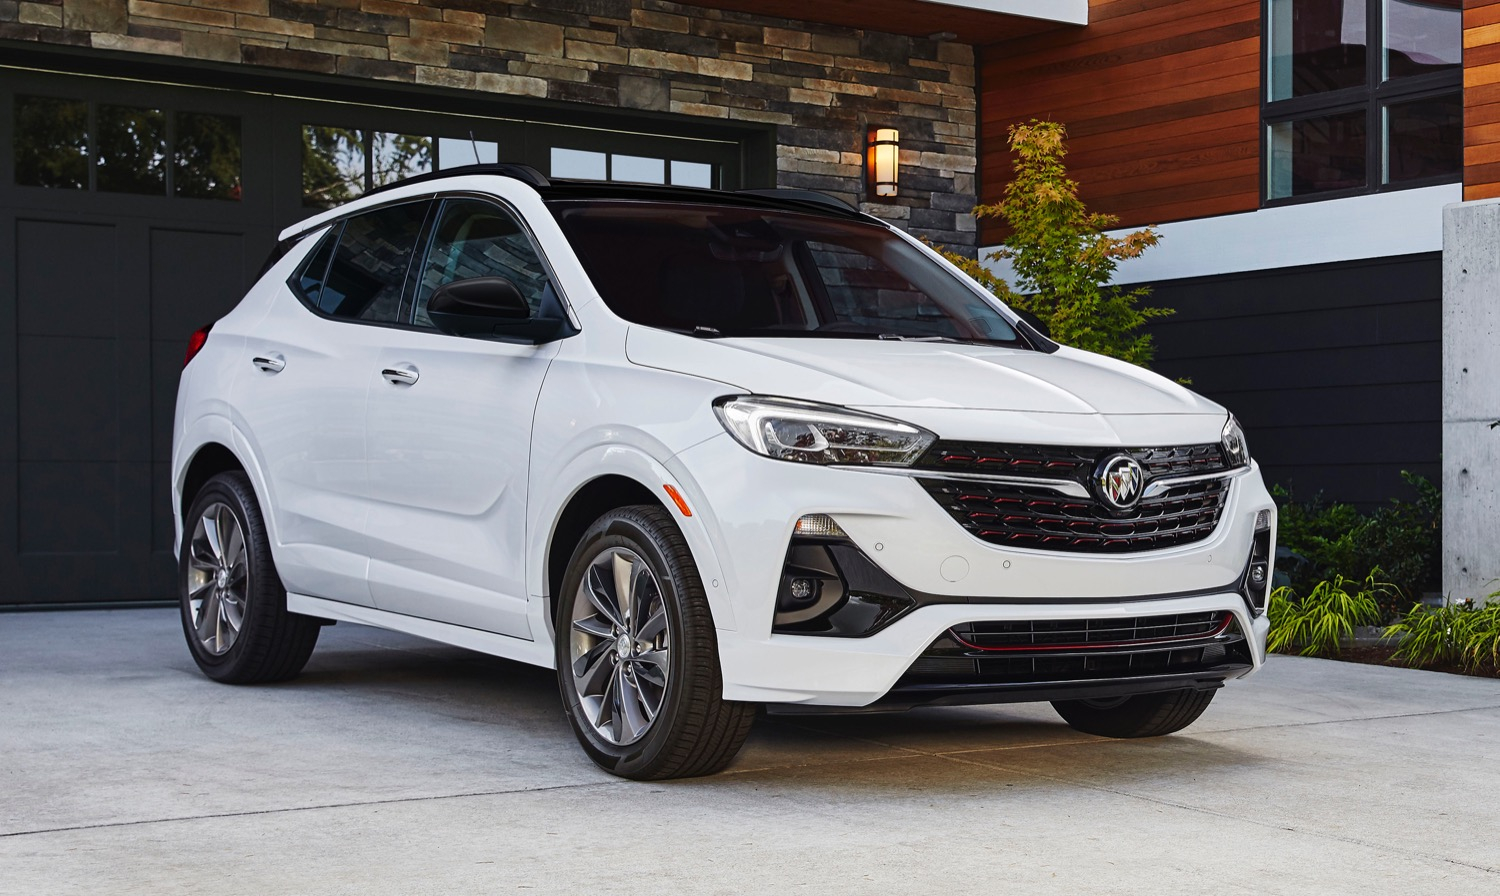 Buick Encore Gx Discount, Special Lease Offer June 2020 | Gm 2022 Buick Encore Gx Owners Manual, News, Reviews